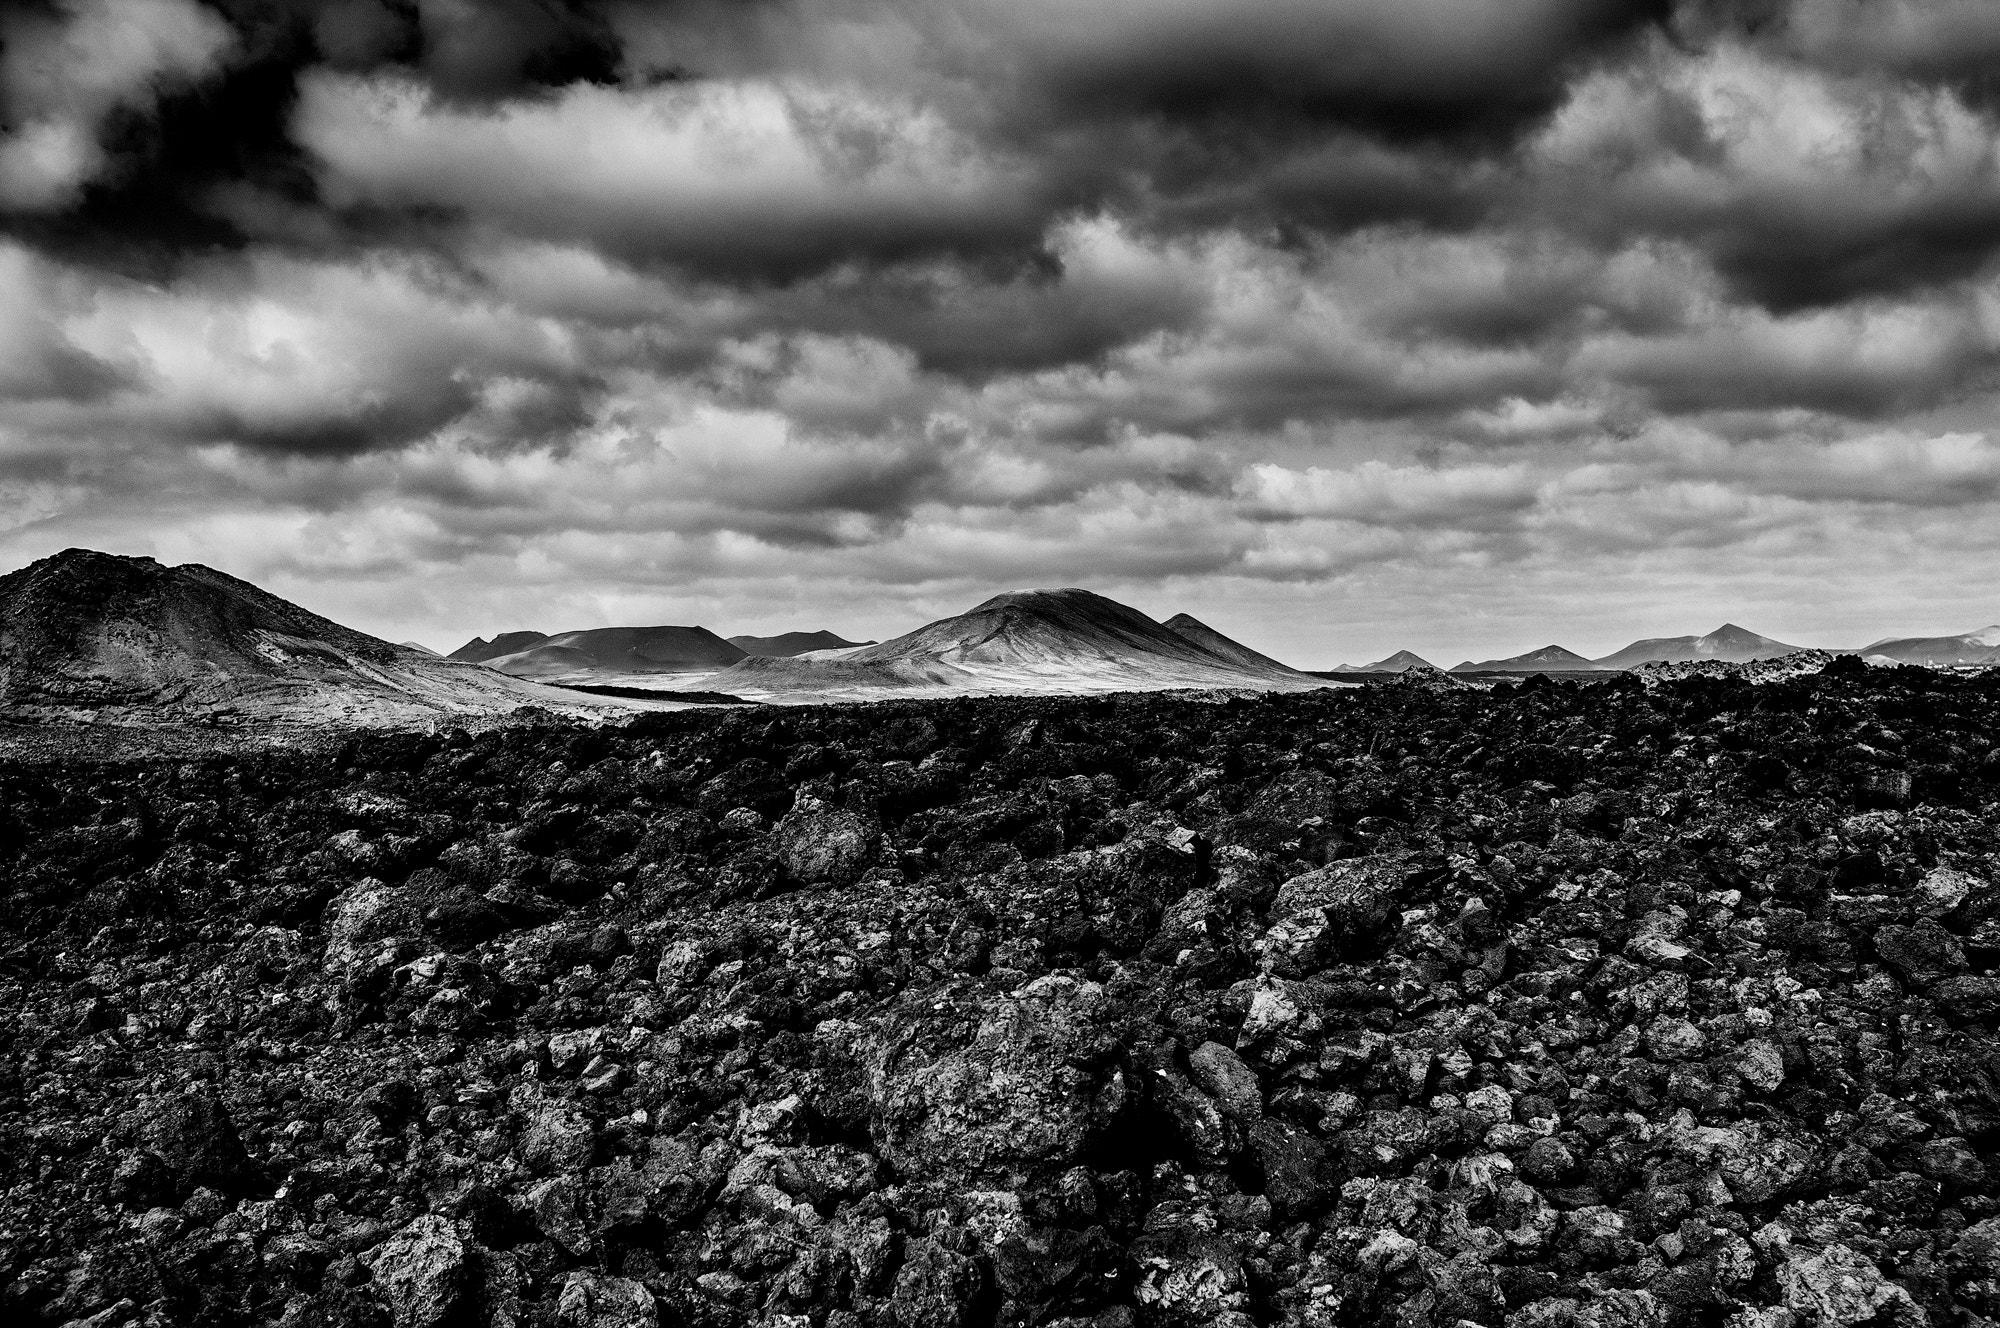 Photograph LANZAROTE by JESUS SILVA ANDRADE on 500px